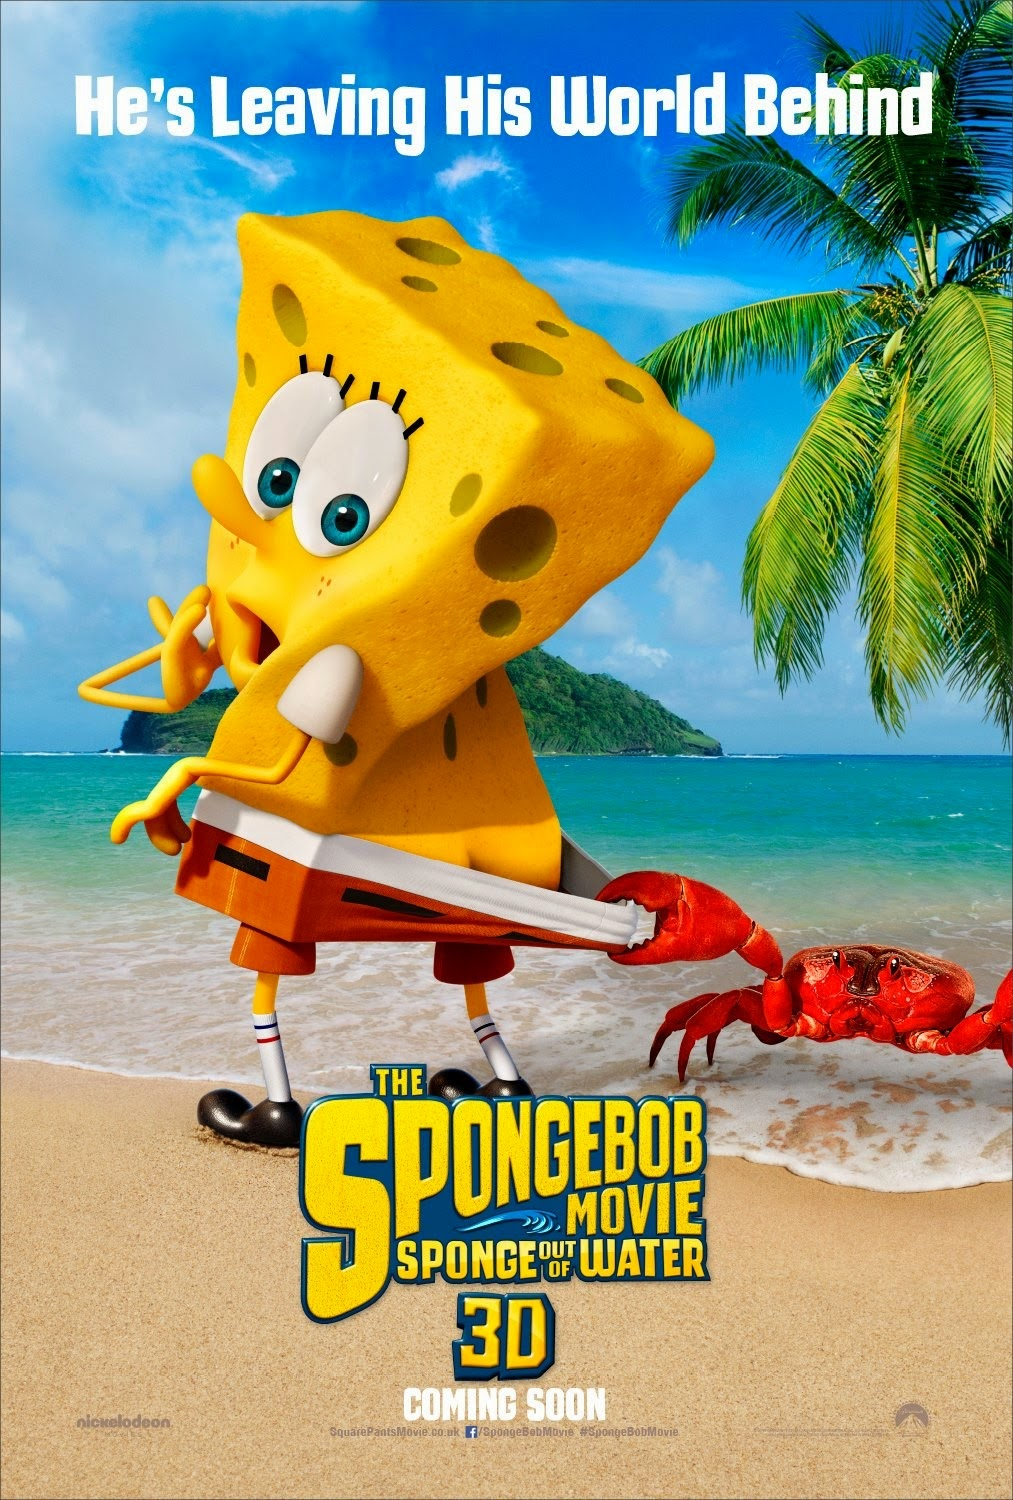 Nickelodeon Movies : nickelodeon, movies, NickALive!:, Nickelodeon, Movies, Unveils, First, SpongeBob, Movie:, Sponge, Water